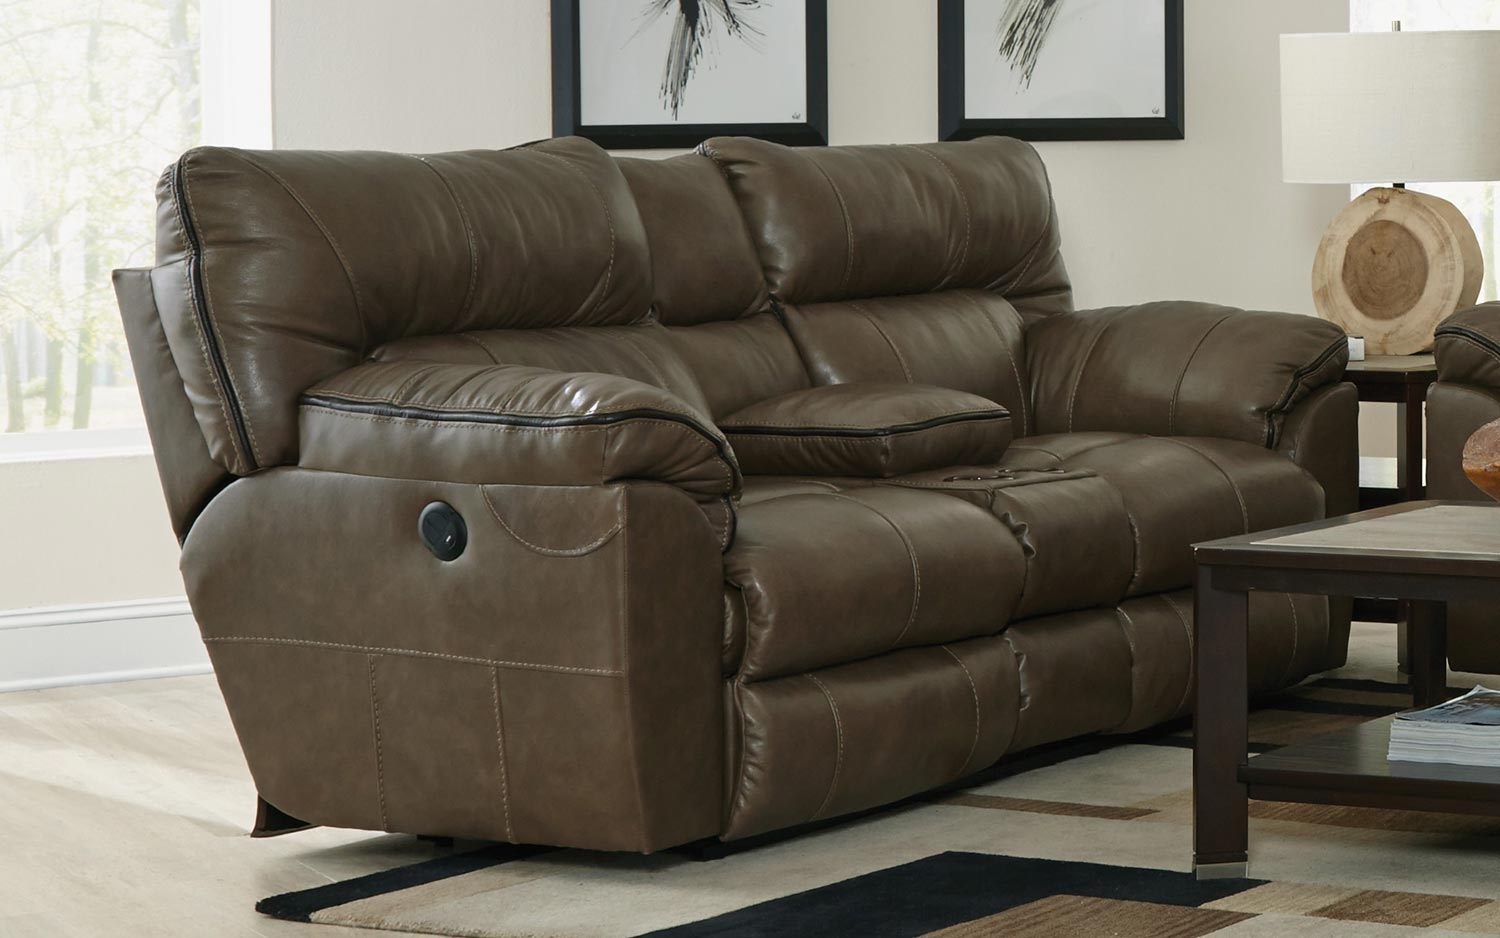 height loveseat width products reyesreclining reyes flat with cup threshold and trim catnapper lay reclining item console